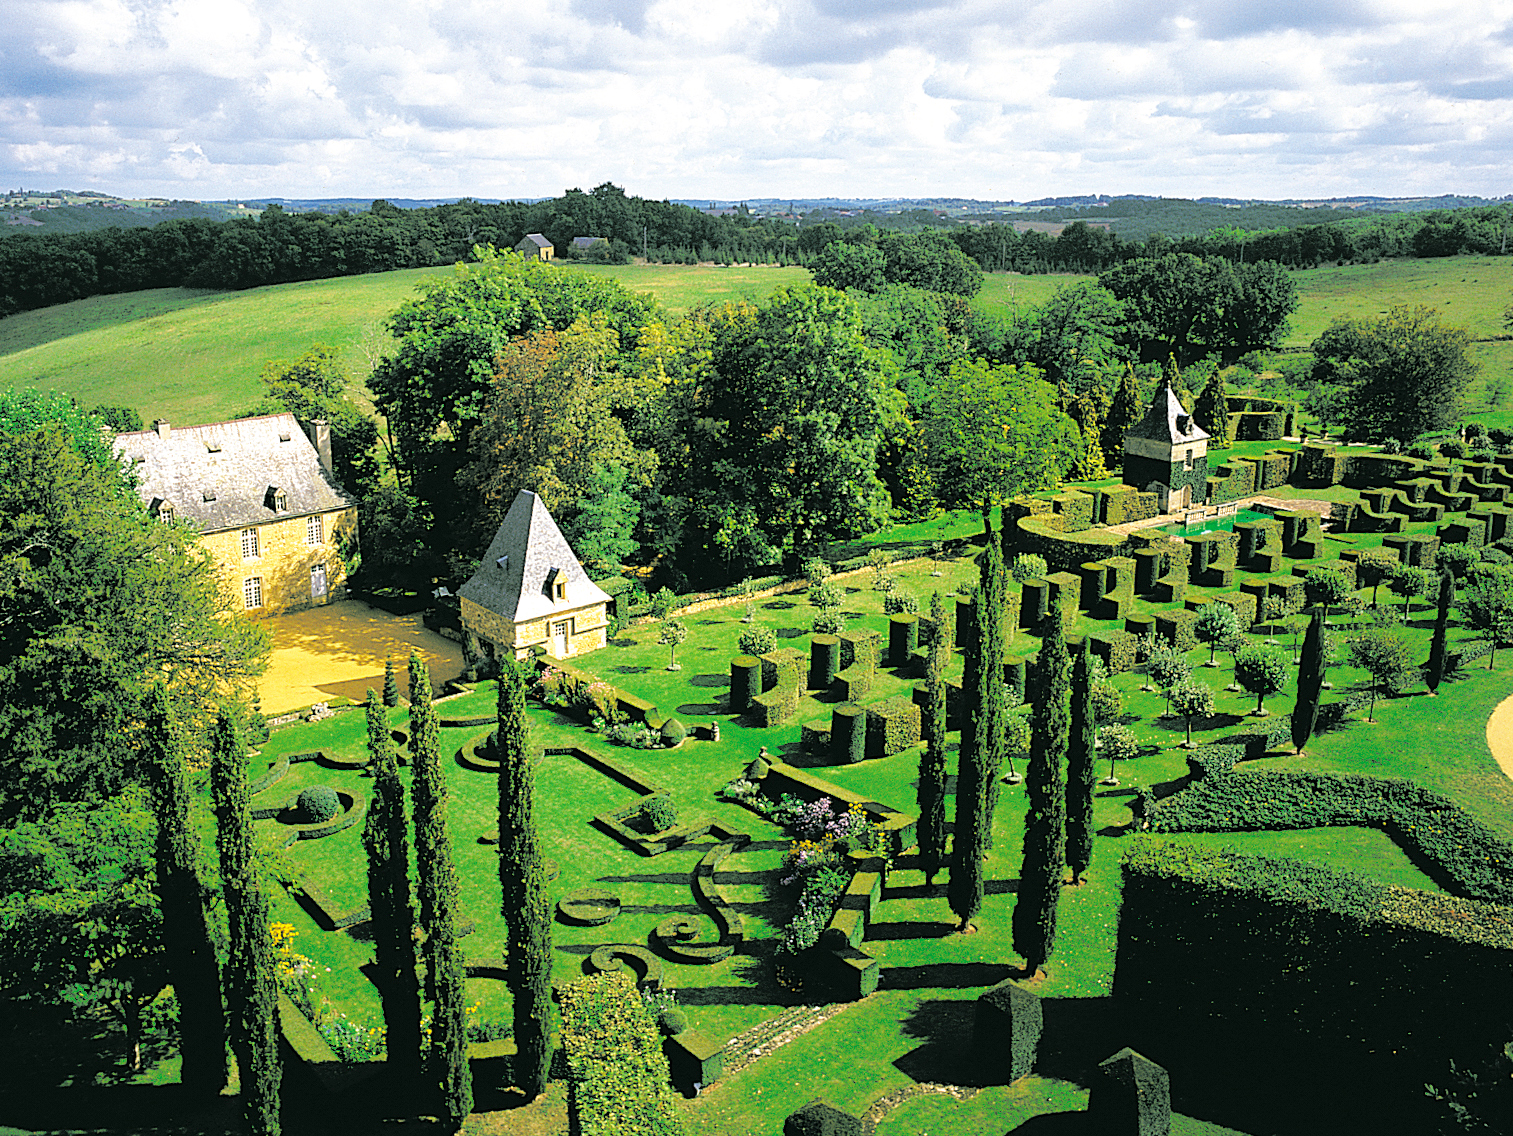 The gardens of Eyrignac from above © J.B Leroux